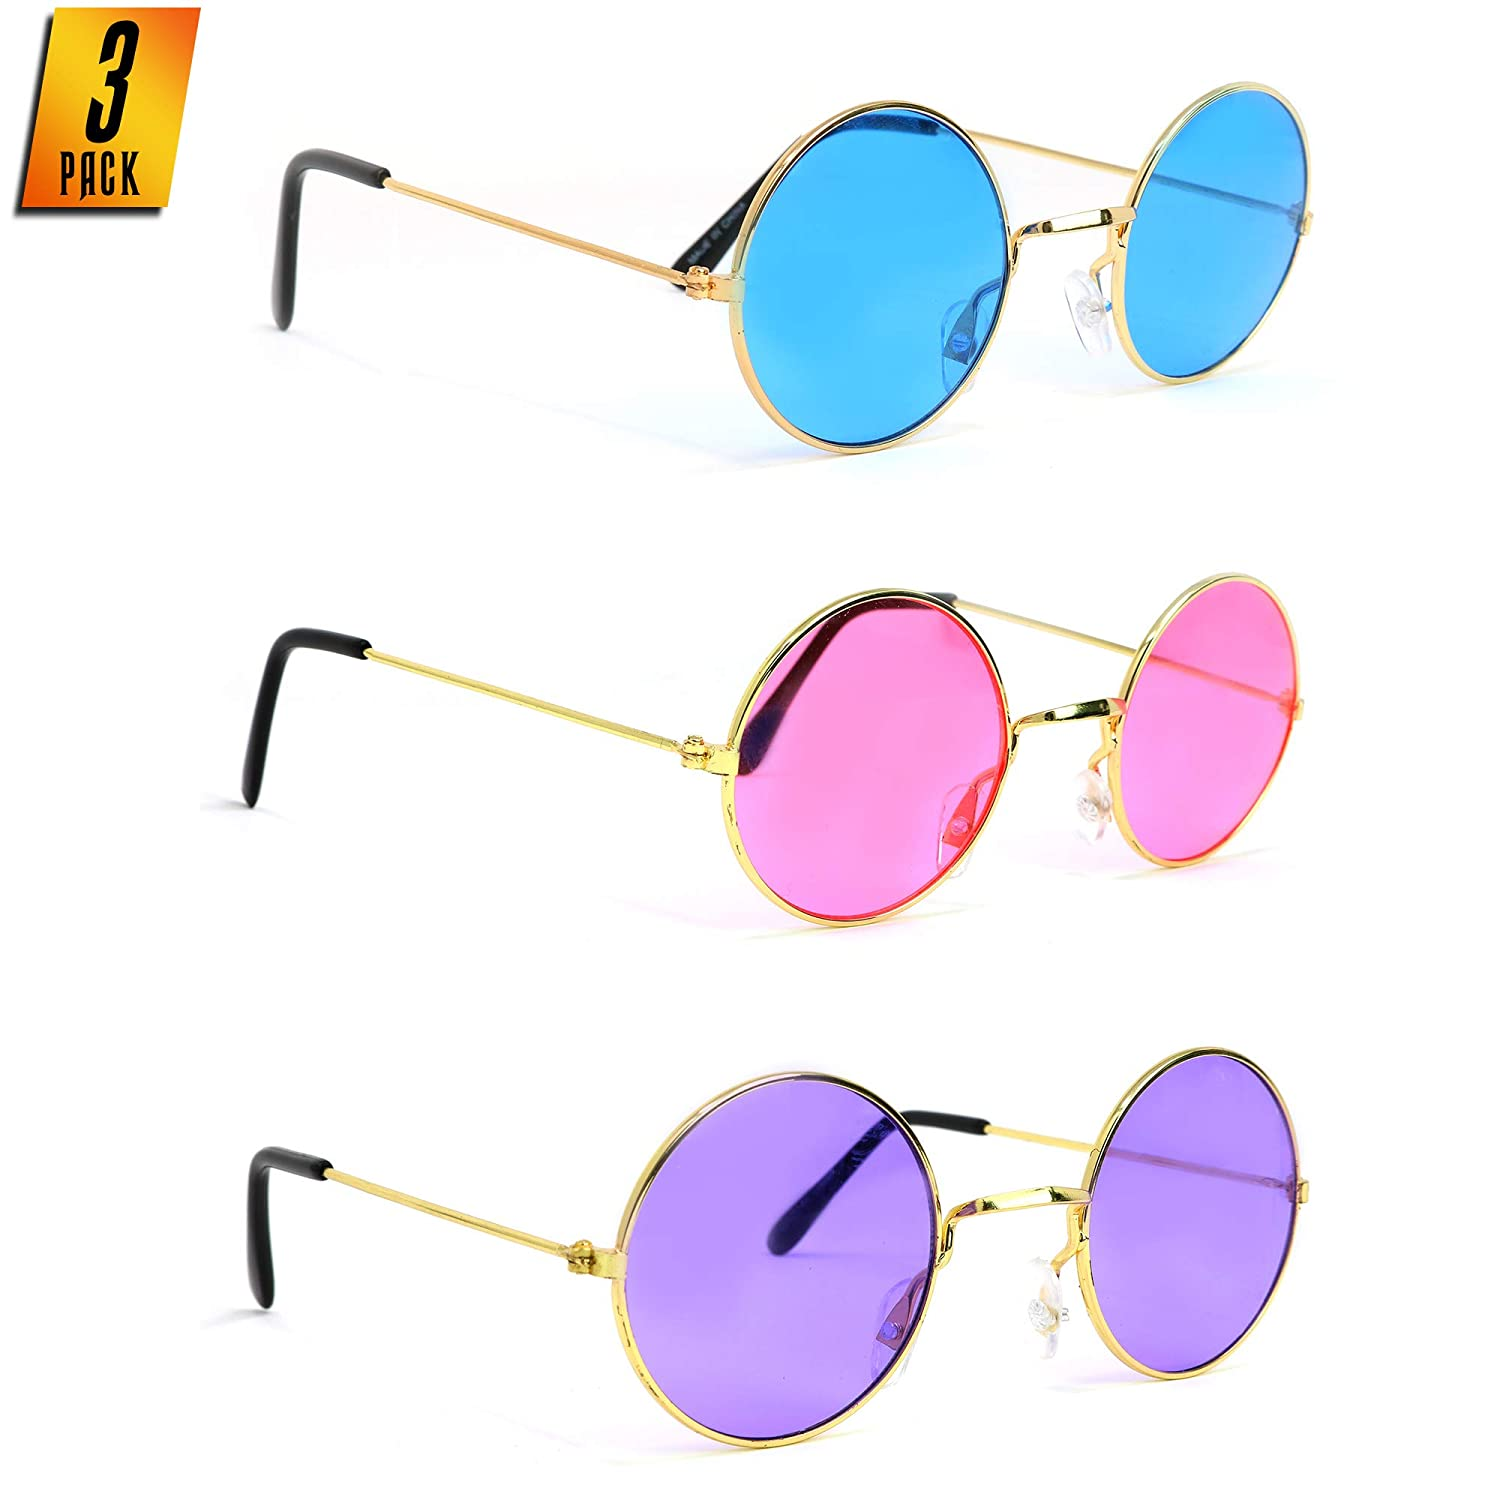 1e84d24a01f Wholesale Price 7.49. Skeleteen Hippy Style Sixties Seventies Round Shades  imitates the fashion of the time making it a perfect costume accessory.